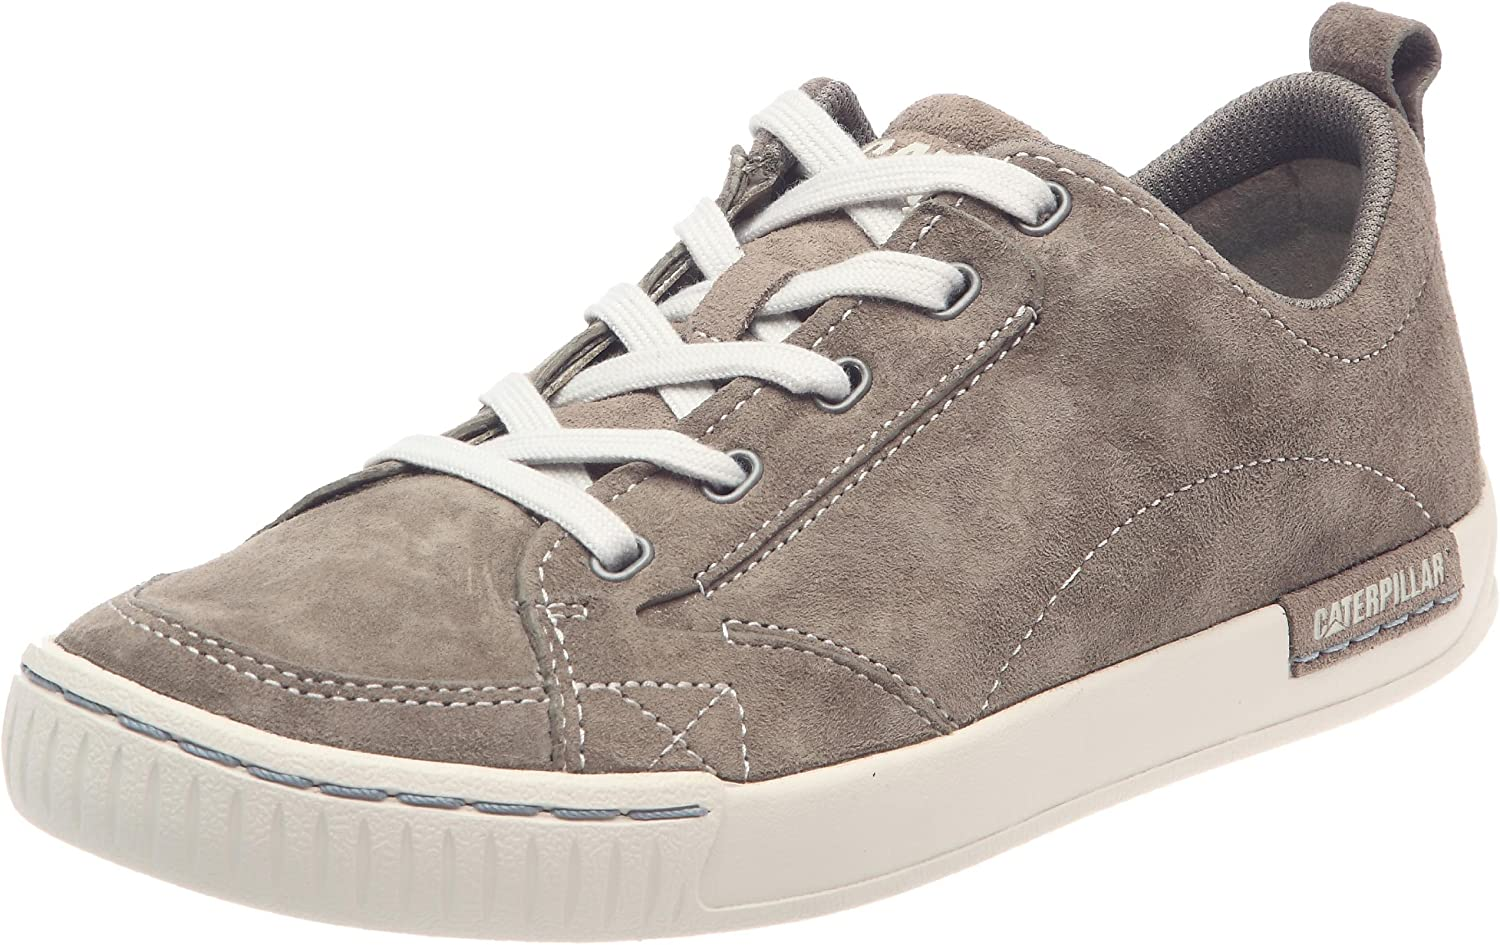 CAT Footwear Men's Modesto Lace Up